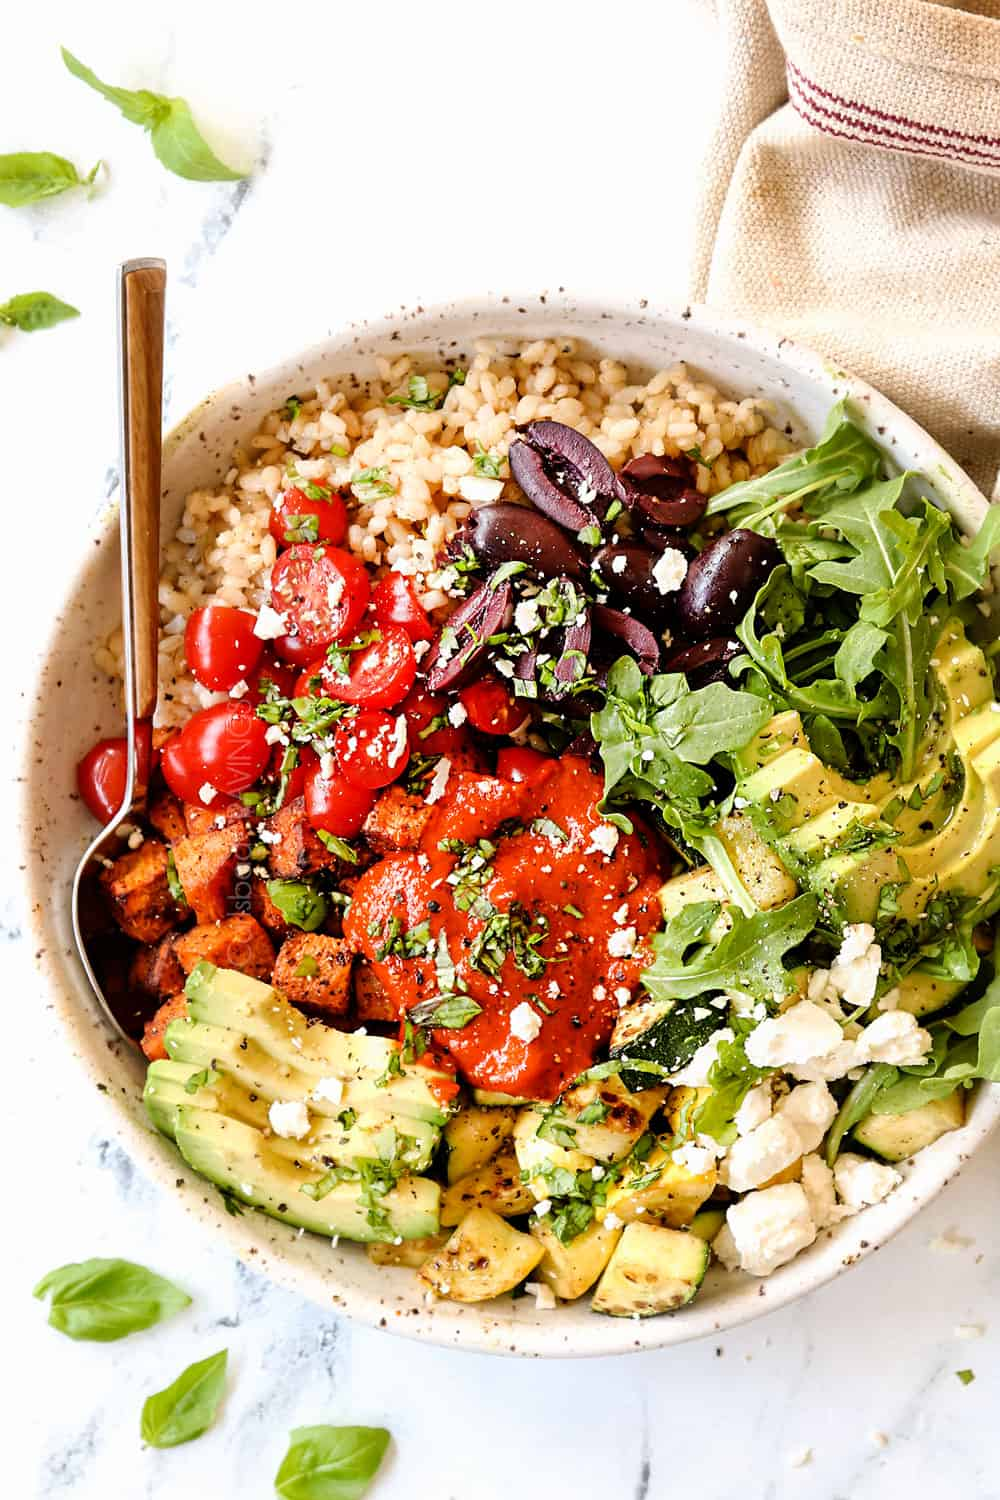 top view showing how to use roasted red pepper sauce by adding it to a Mediterranean bowl